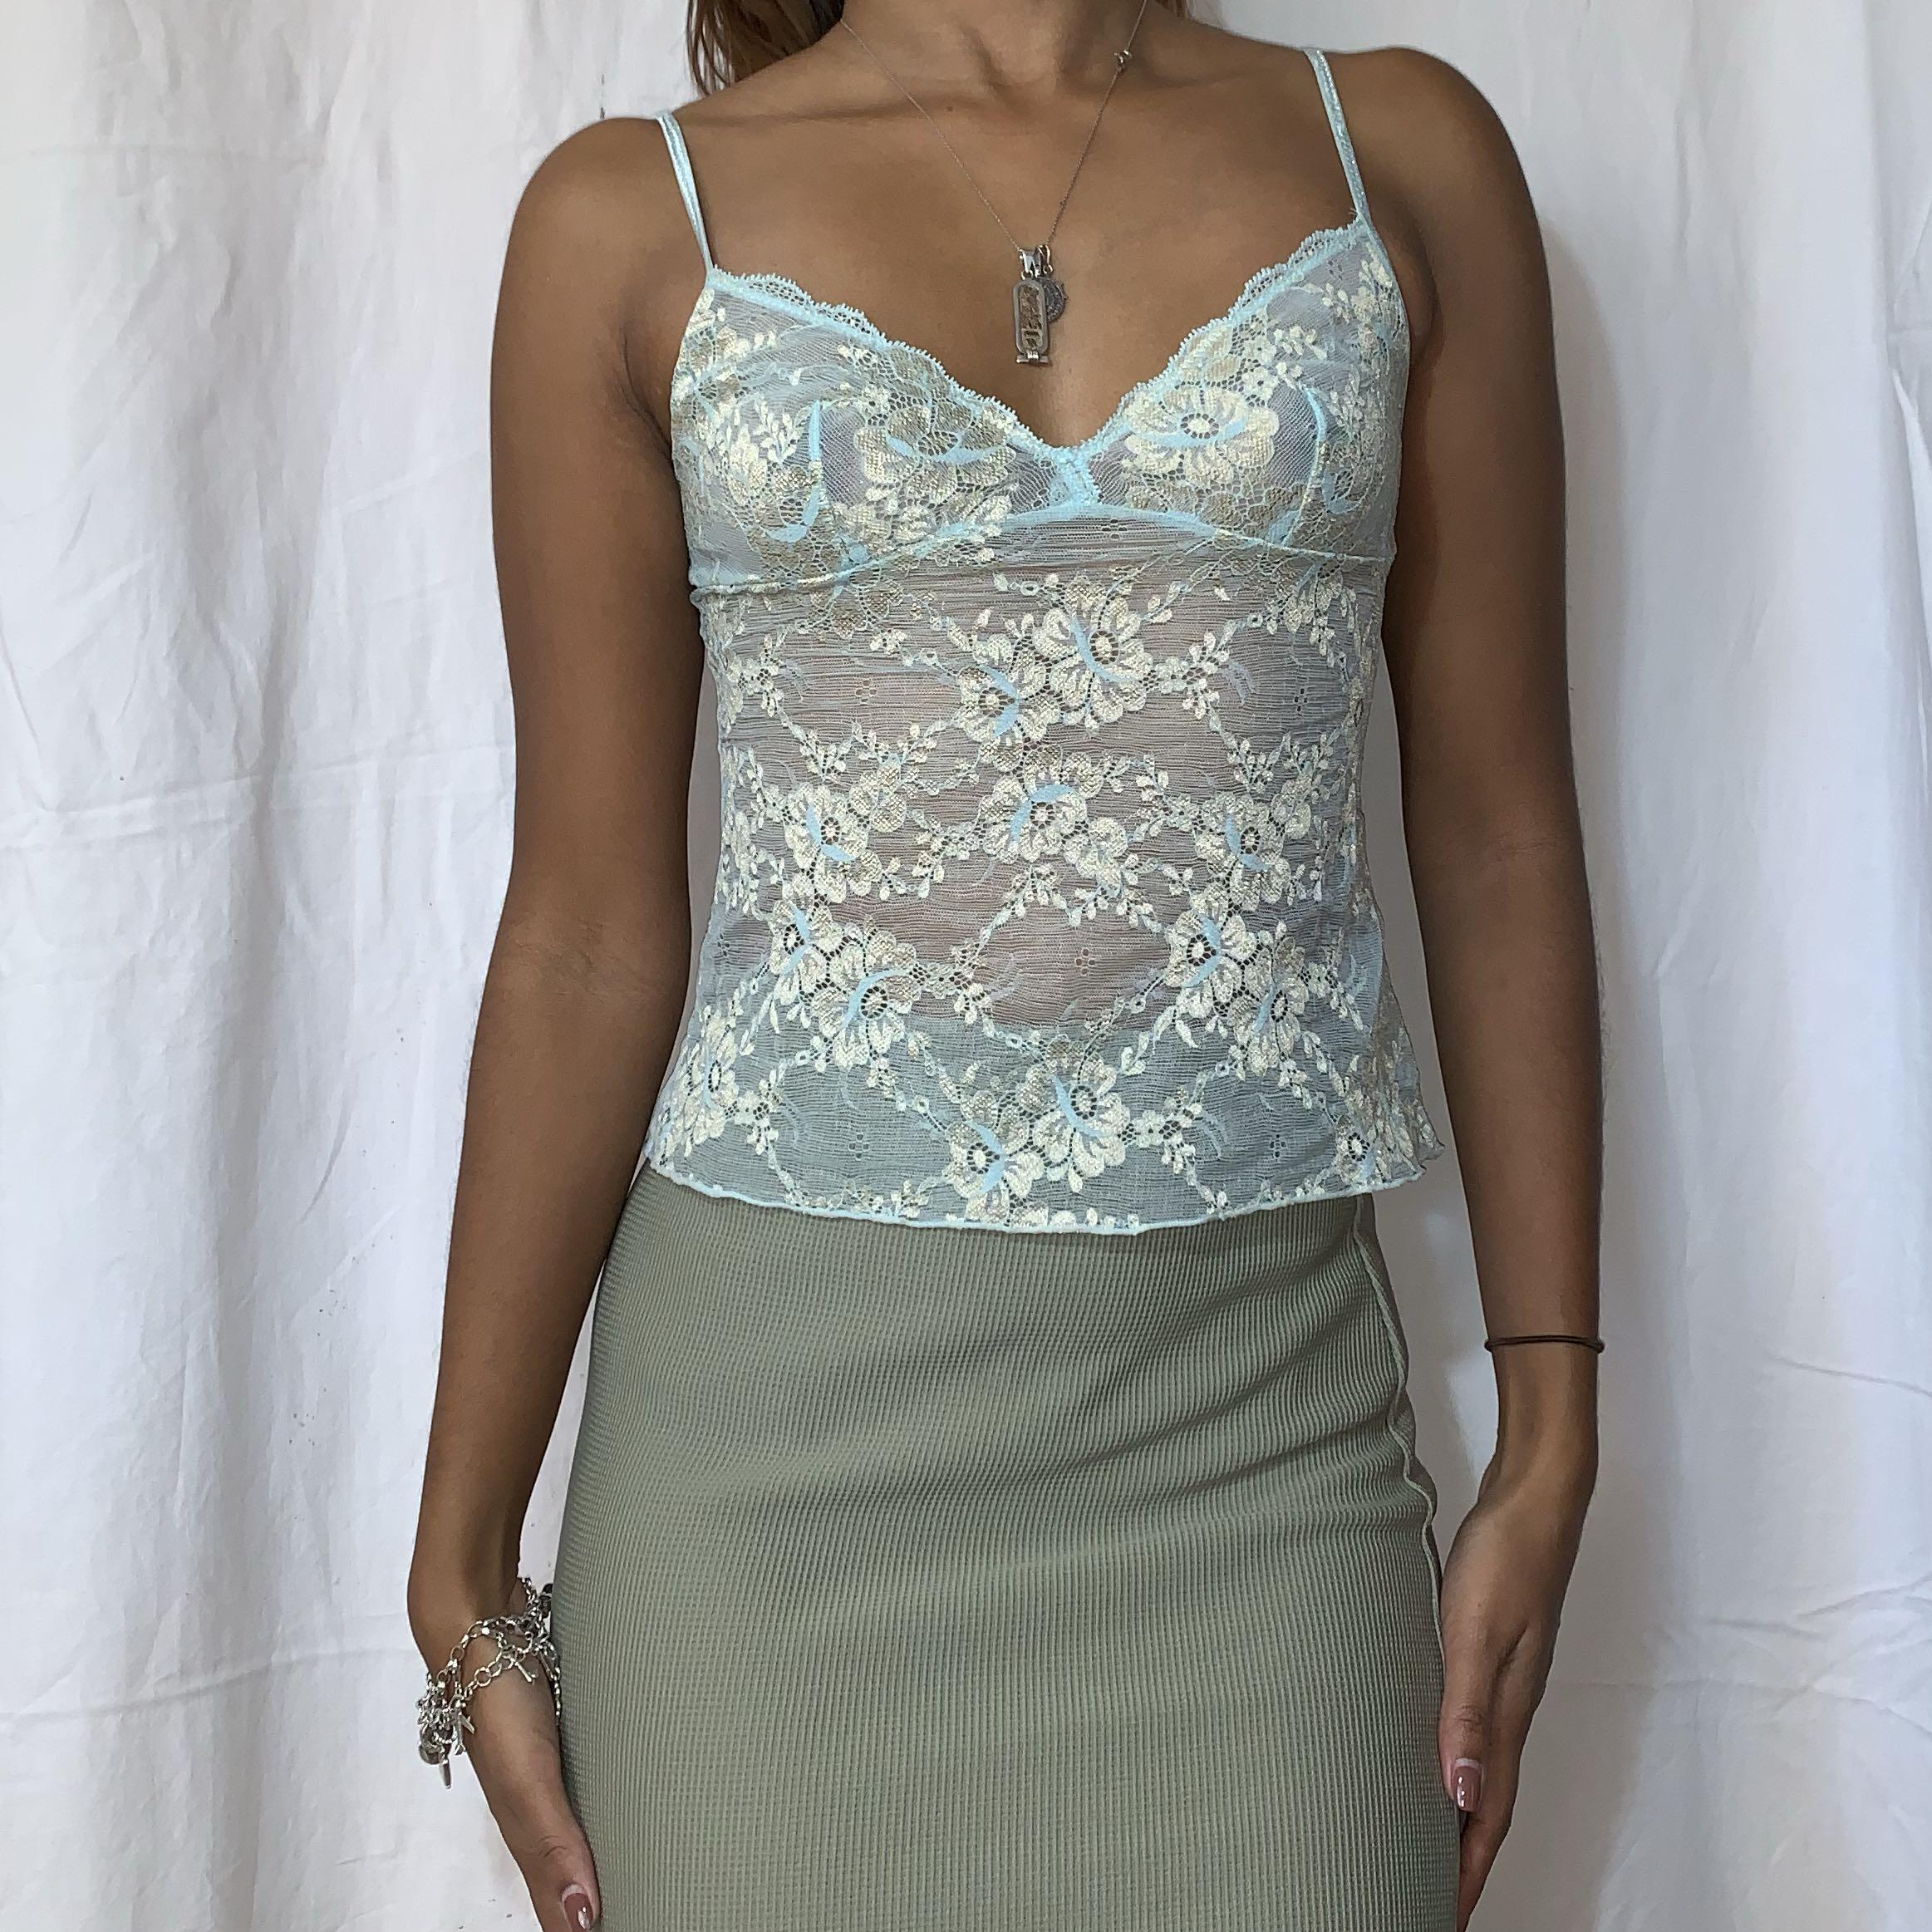 Vintage baby blue lace camisole top (shipping incl)